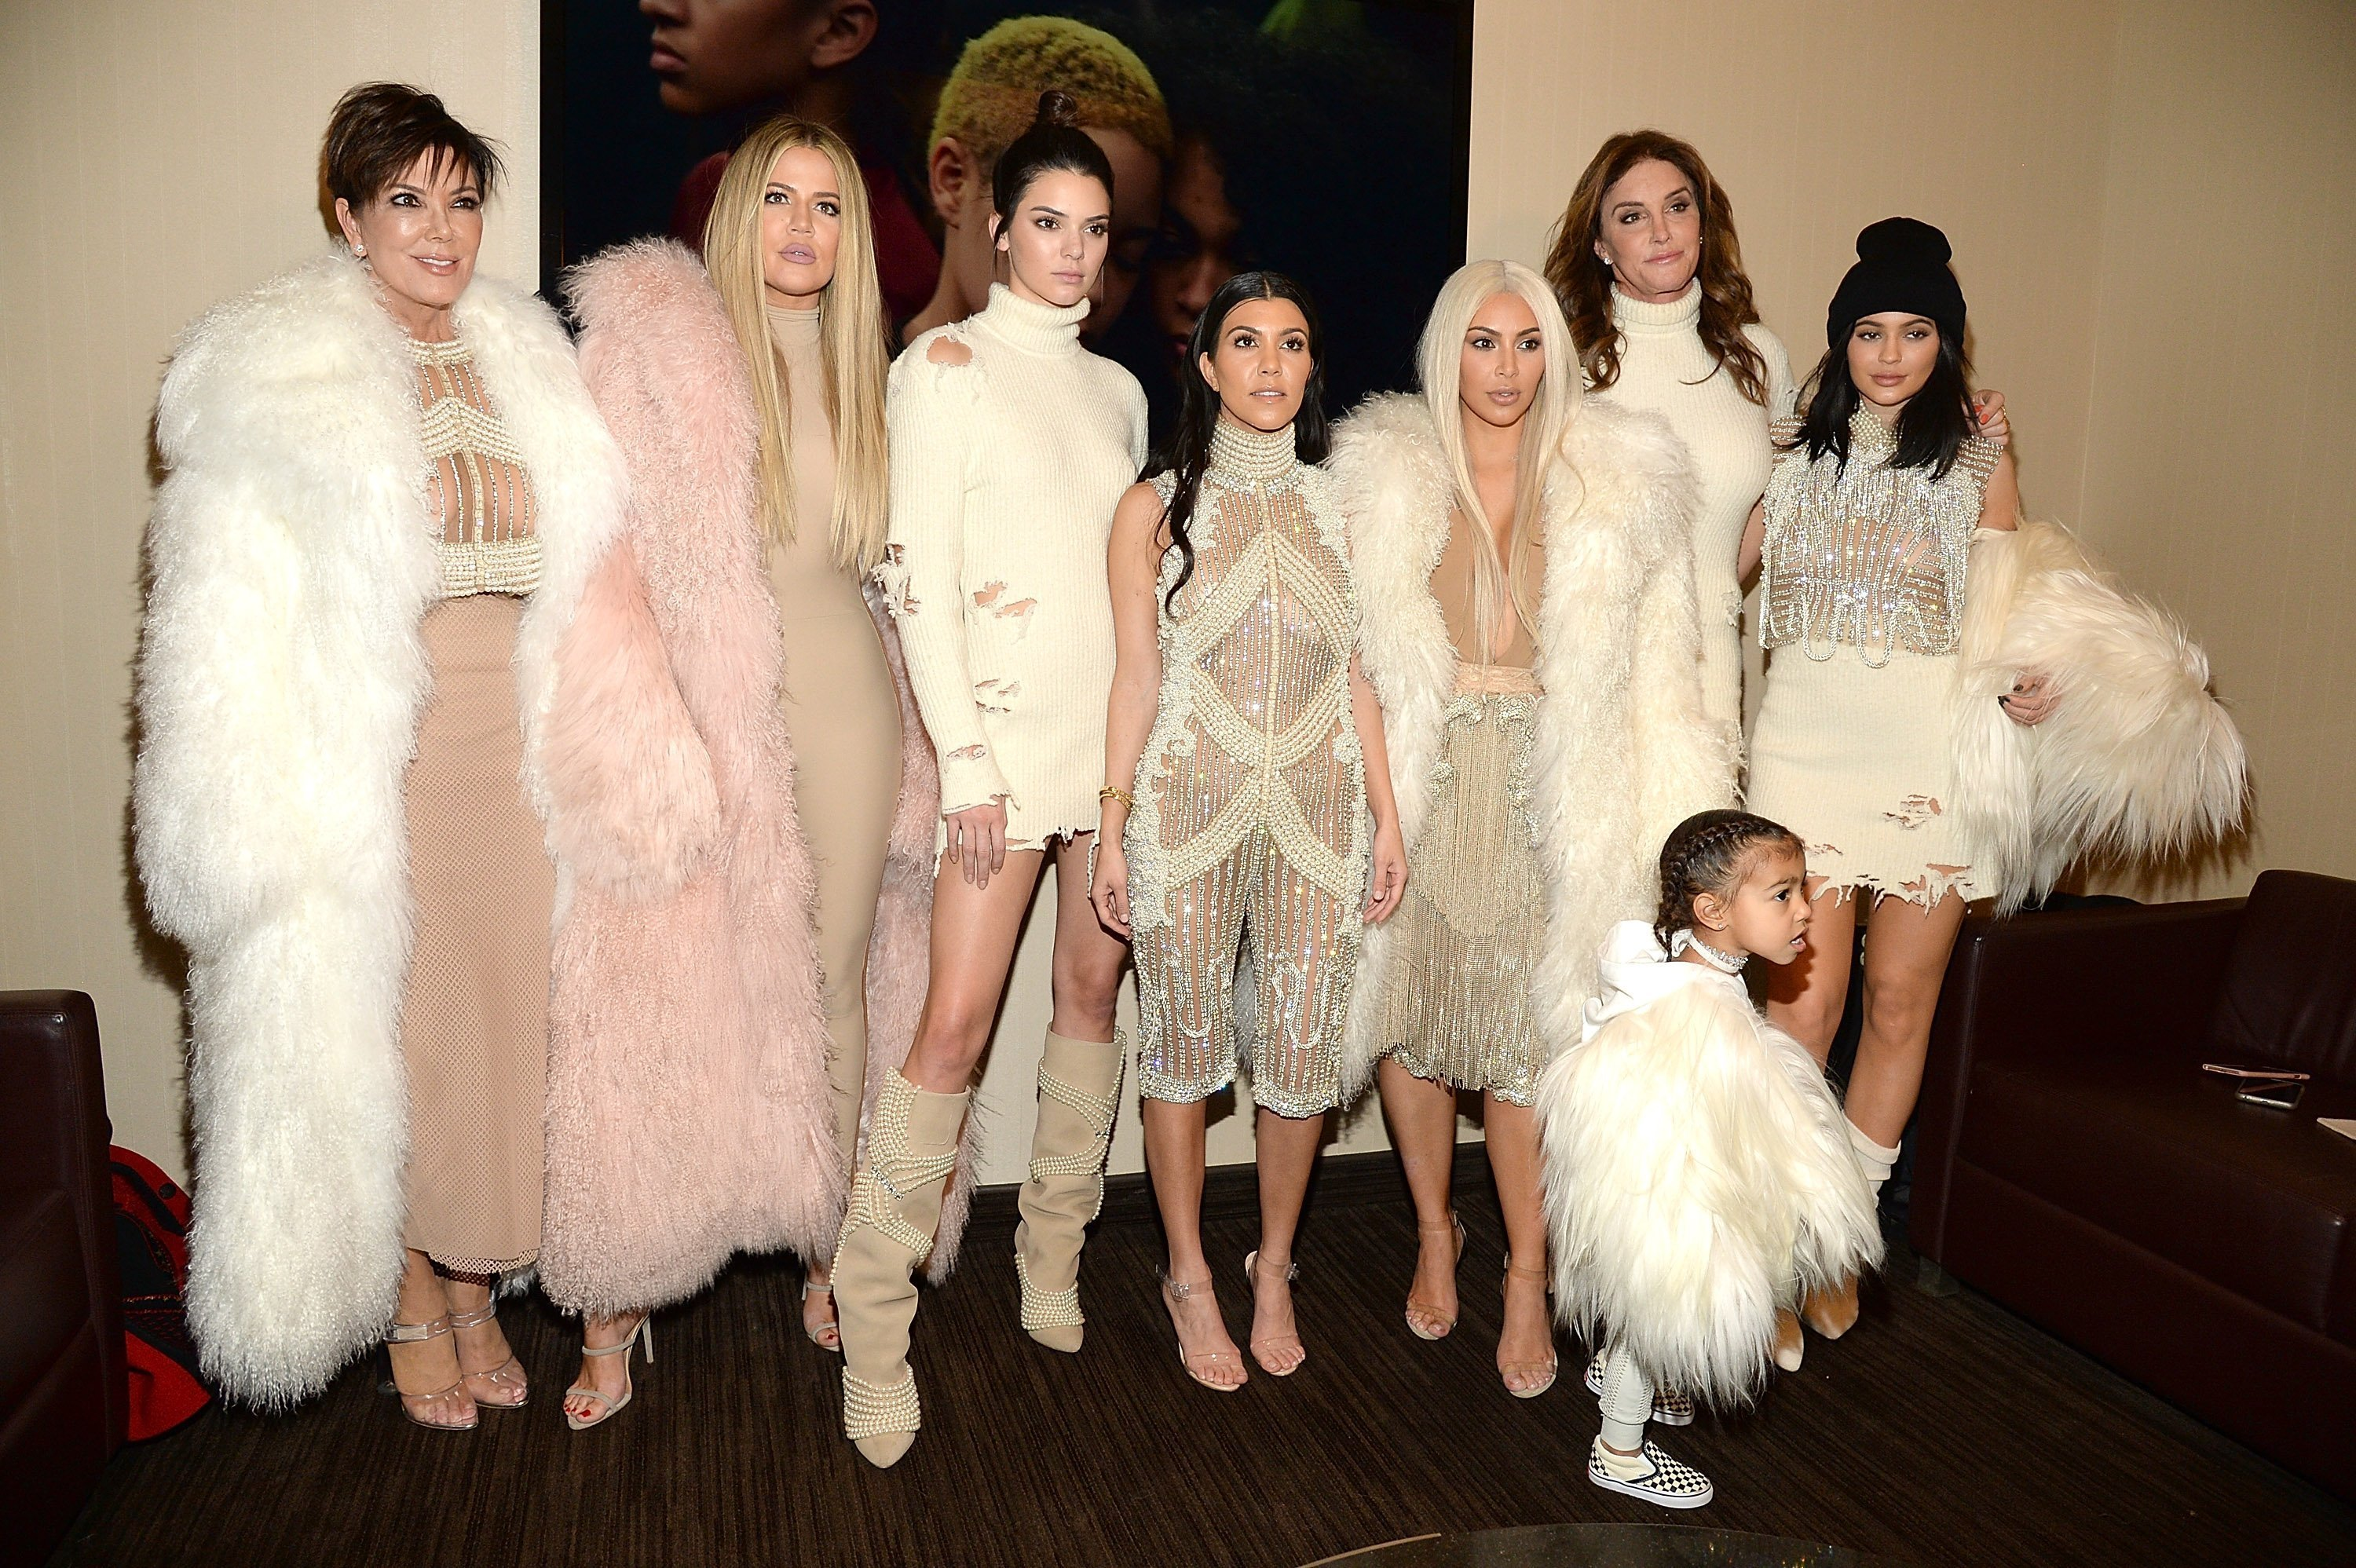 Khloe Kardashian, Kris Jenner, Kendall Jenner, Kourtney Kardashian, Kim Kardashian West, North West, Caitlyn Jenner and Kylie Jenner attend Kanye West Yeezy Season 3 in New York City on February 11, 2016 | Photo: Getty Images